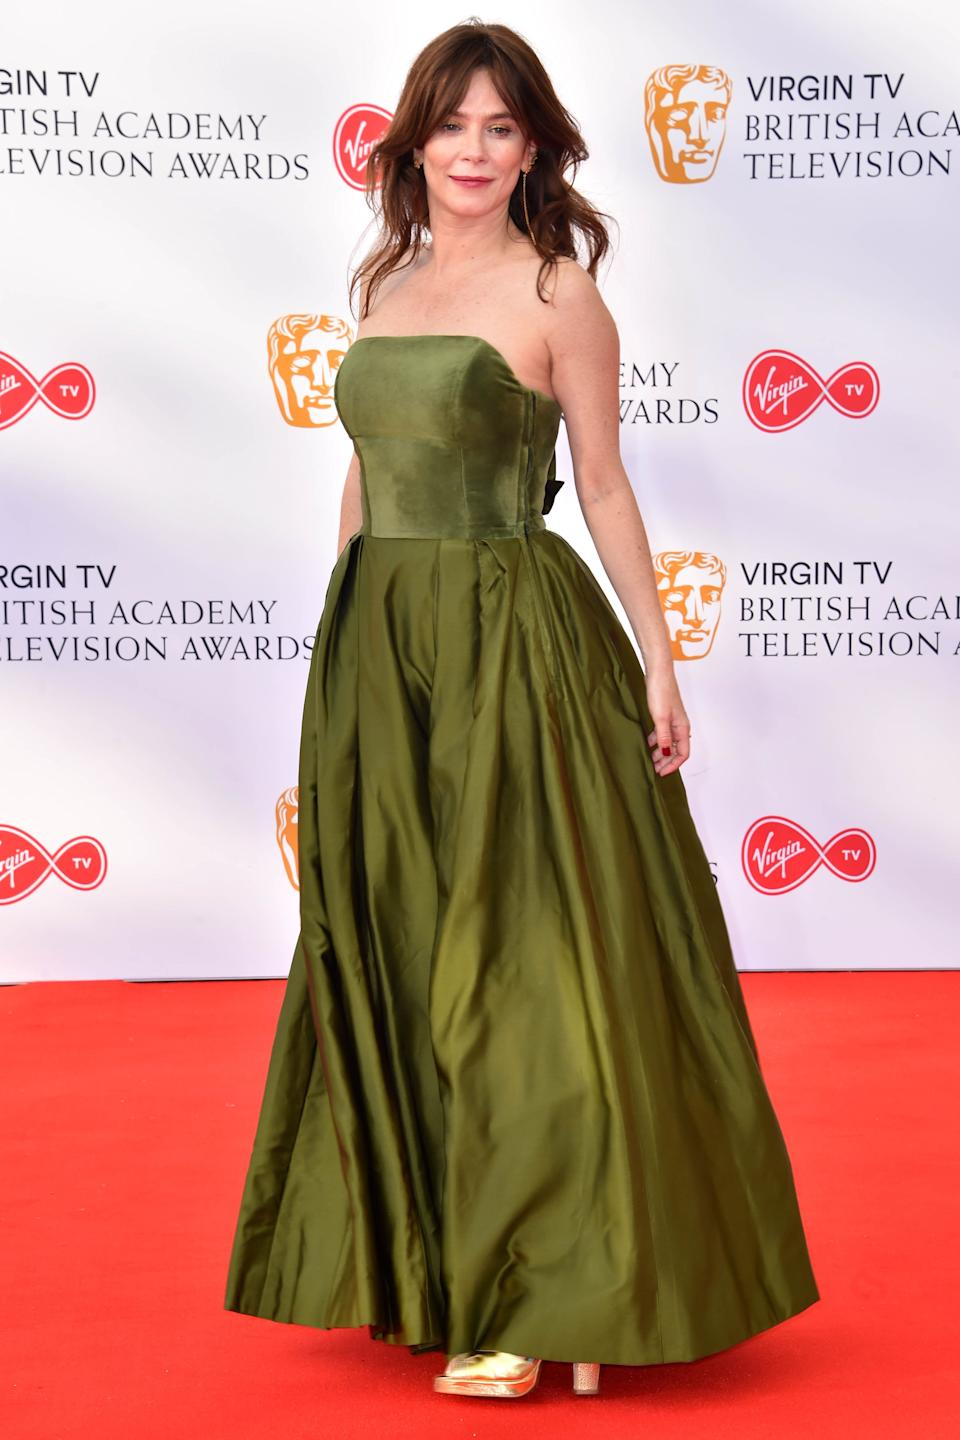 Anna Friel attending the Virgin TV British Academy Television Awards 2018 held at the Royal Festival Hall, Southbank Centre, London.